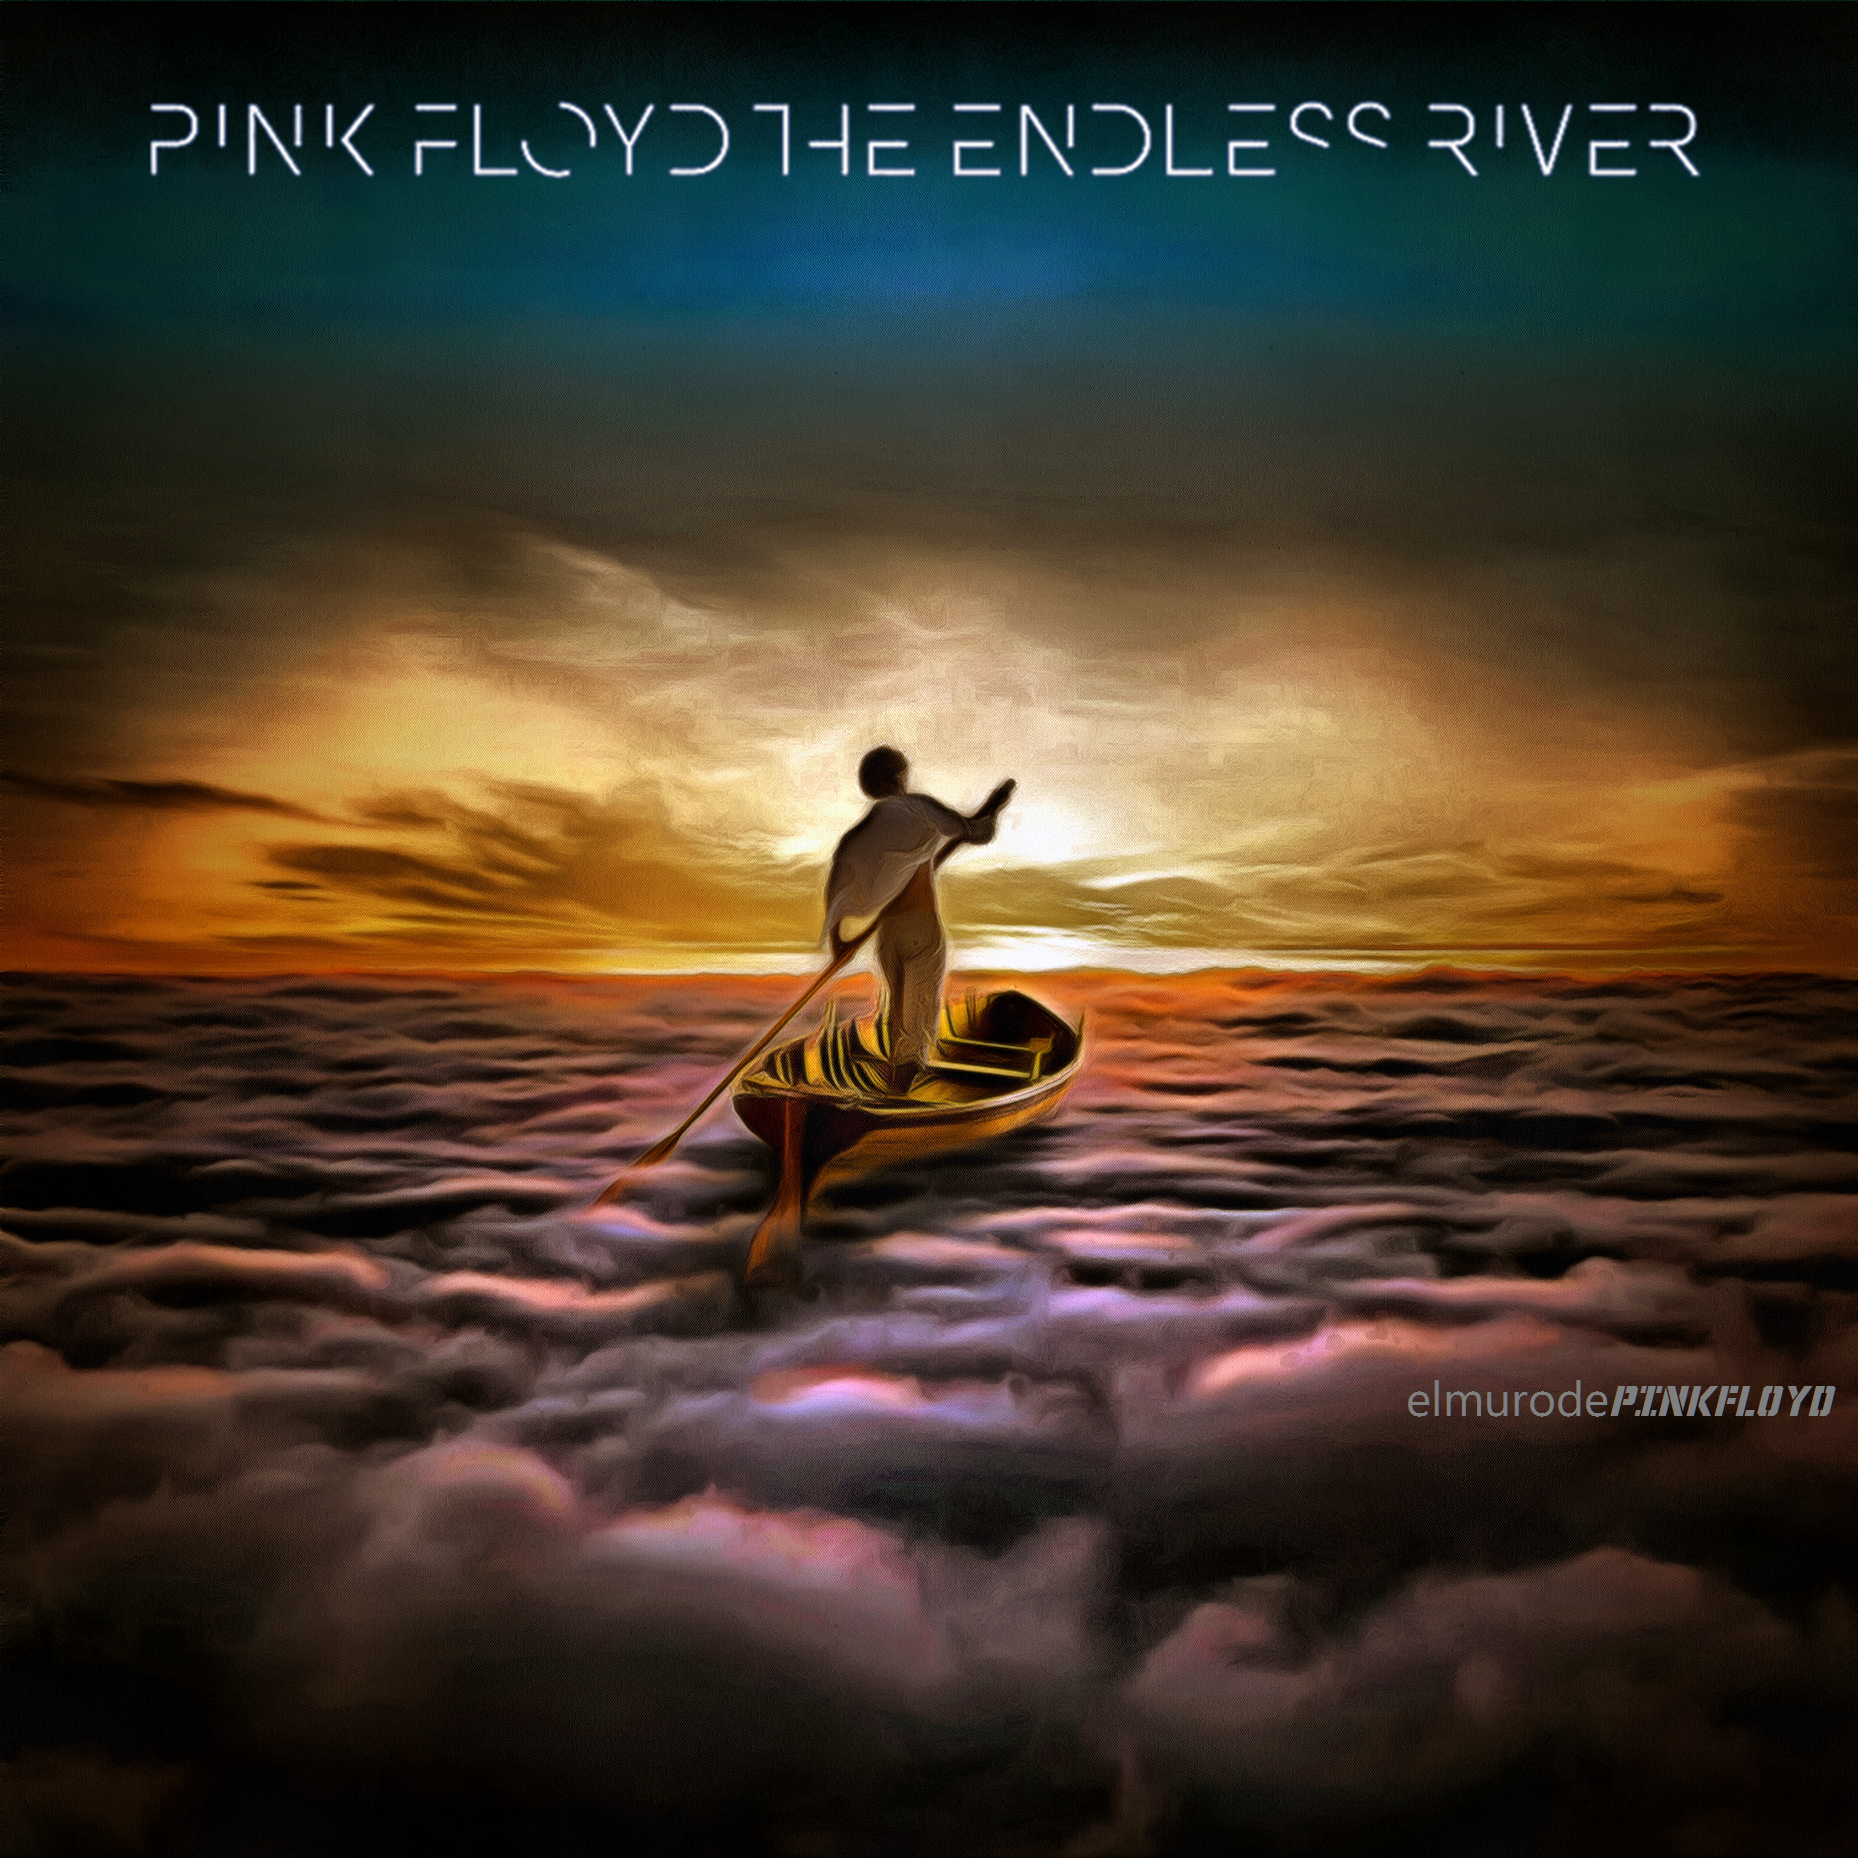 Endless River Cover Art